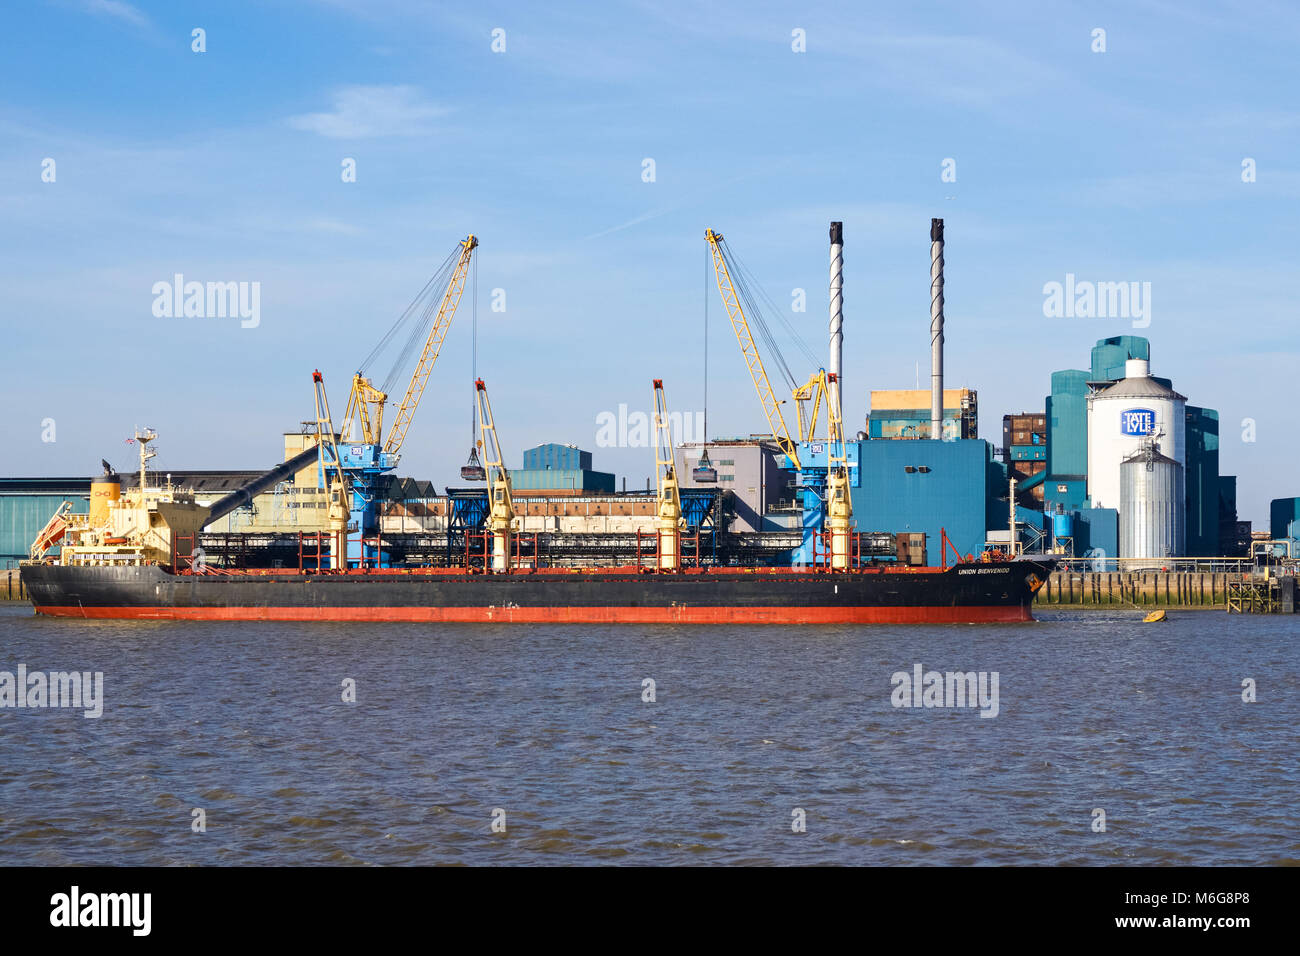 Tate & Lyle Silvertown sugar refinery, Thames Refinery, London, England, United Kingdom, UK - Stock Image